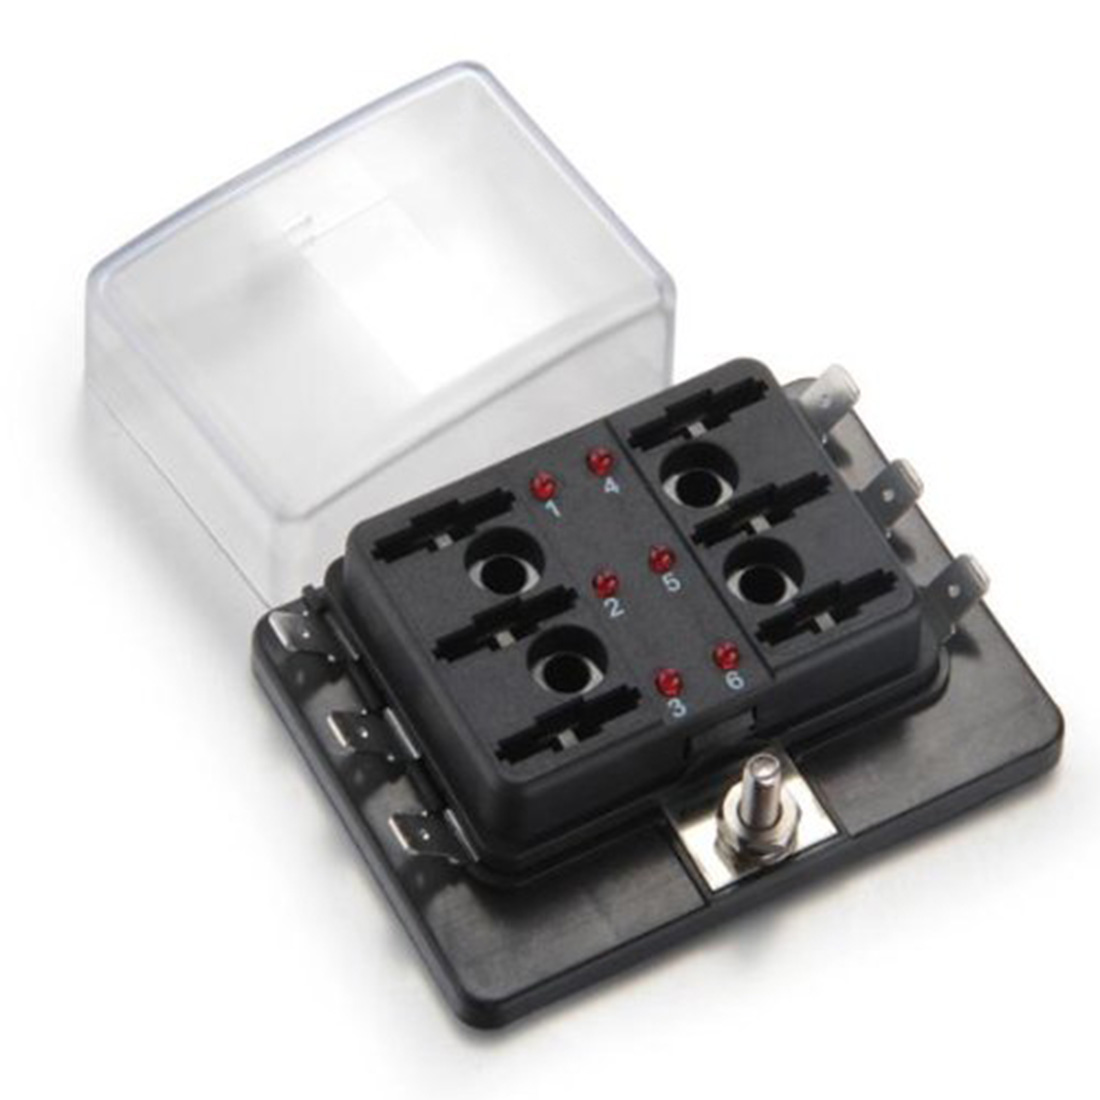 dewtreetali hotsale new top quality 6 way blade fuse box holder positive bus in 12v led warning kit for car boat marine [ 1100 x 1100 Pixel ]